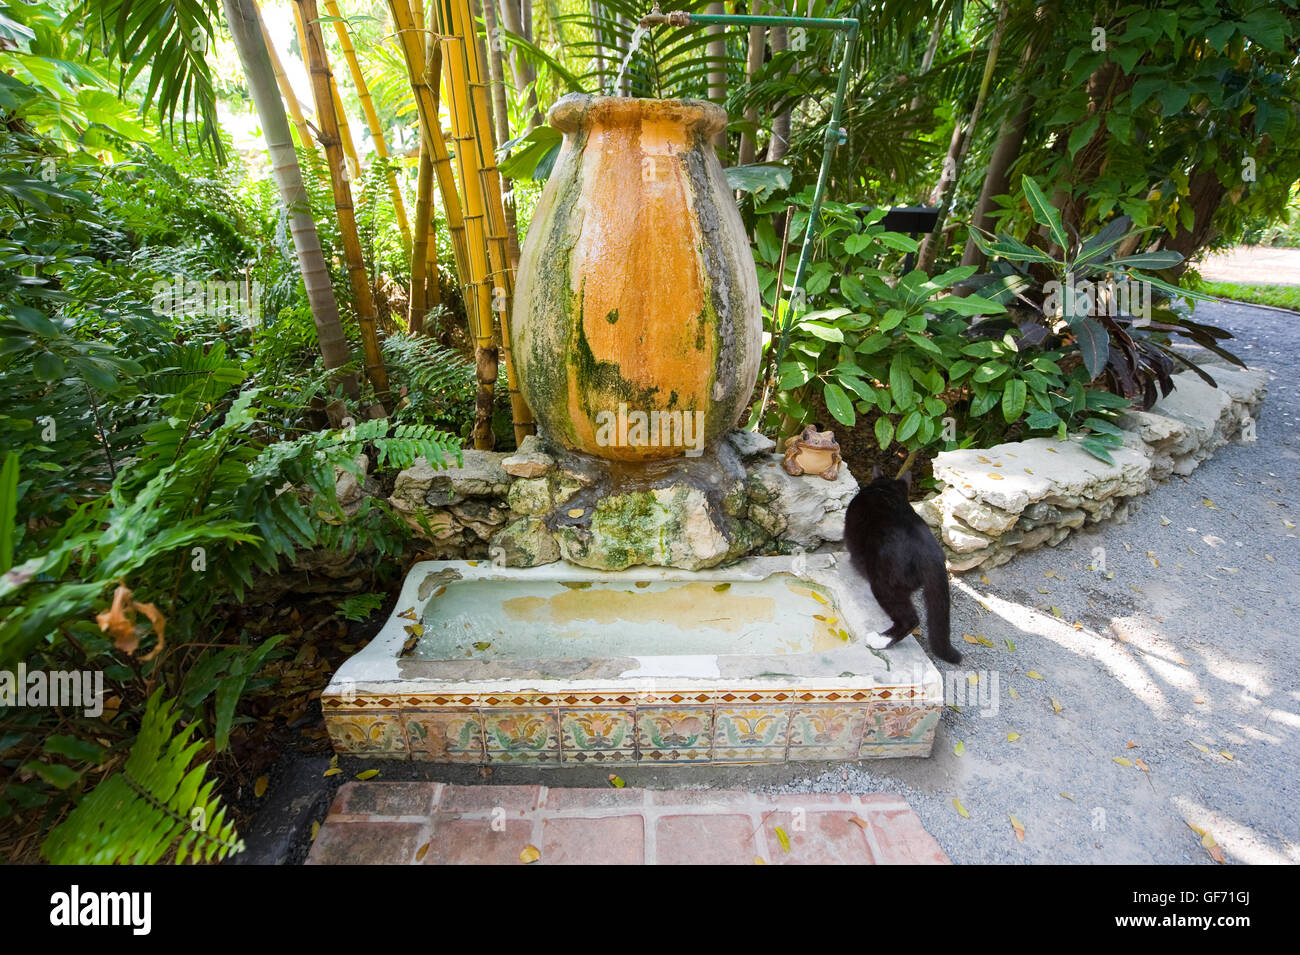 Former Urinal In The Garden Of The Ernest Hemingway House In Key